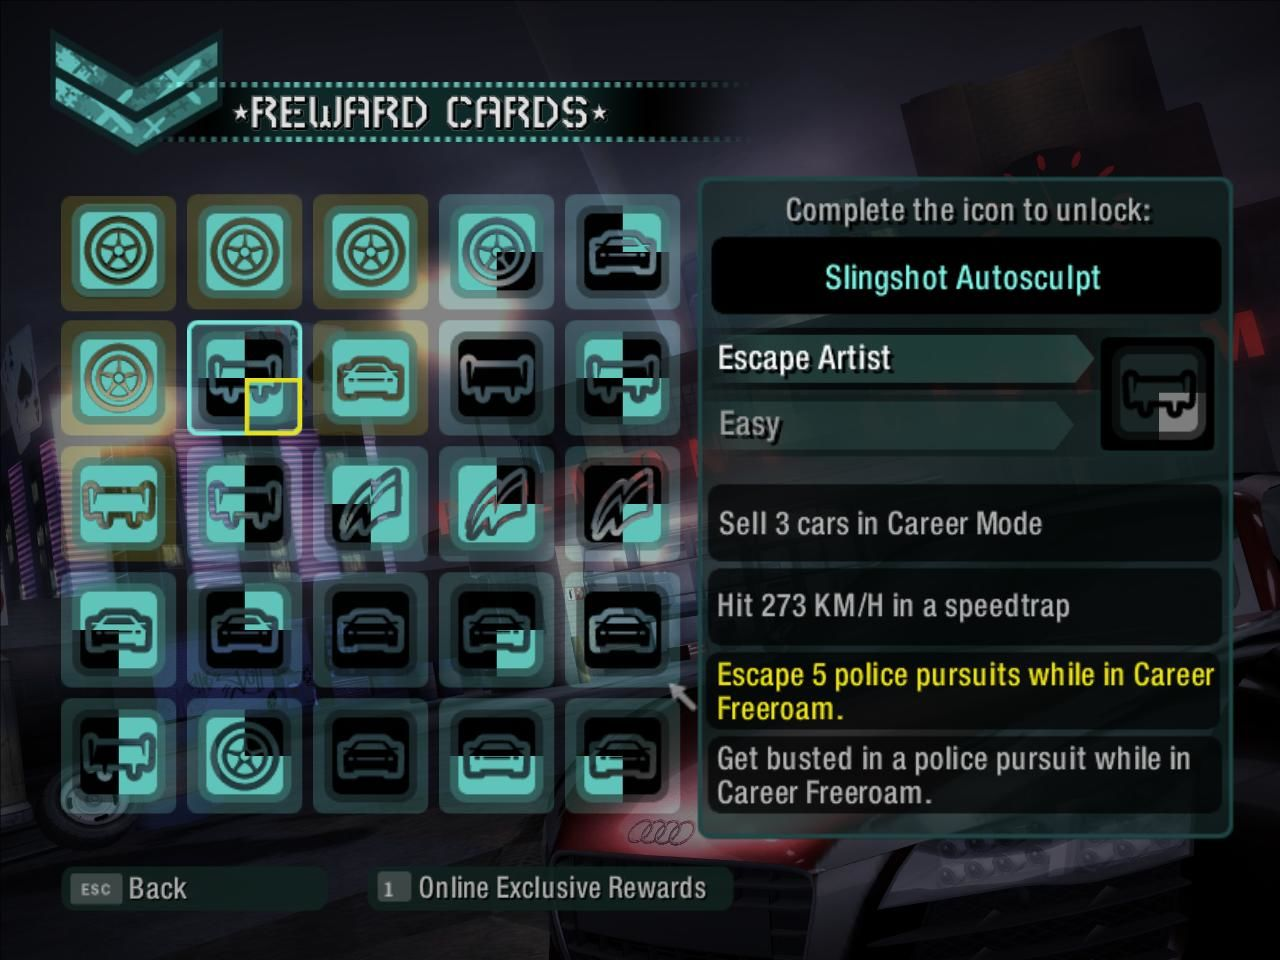 Need for Speed: Carbon Windows Reward Cards Chart: Here you can view what cards you have unlocked and which are missing in order to unlock various extras.